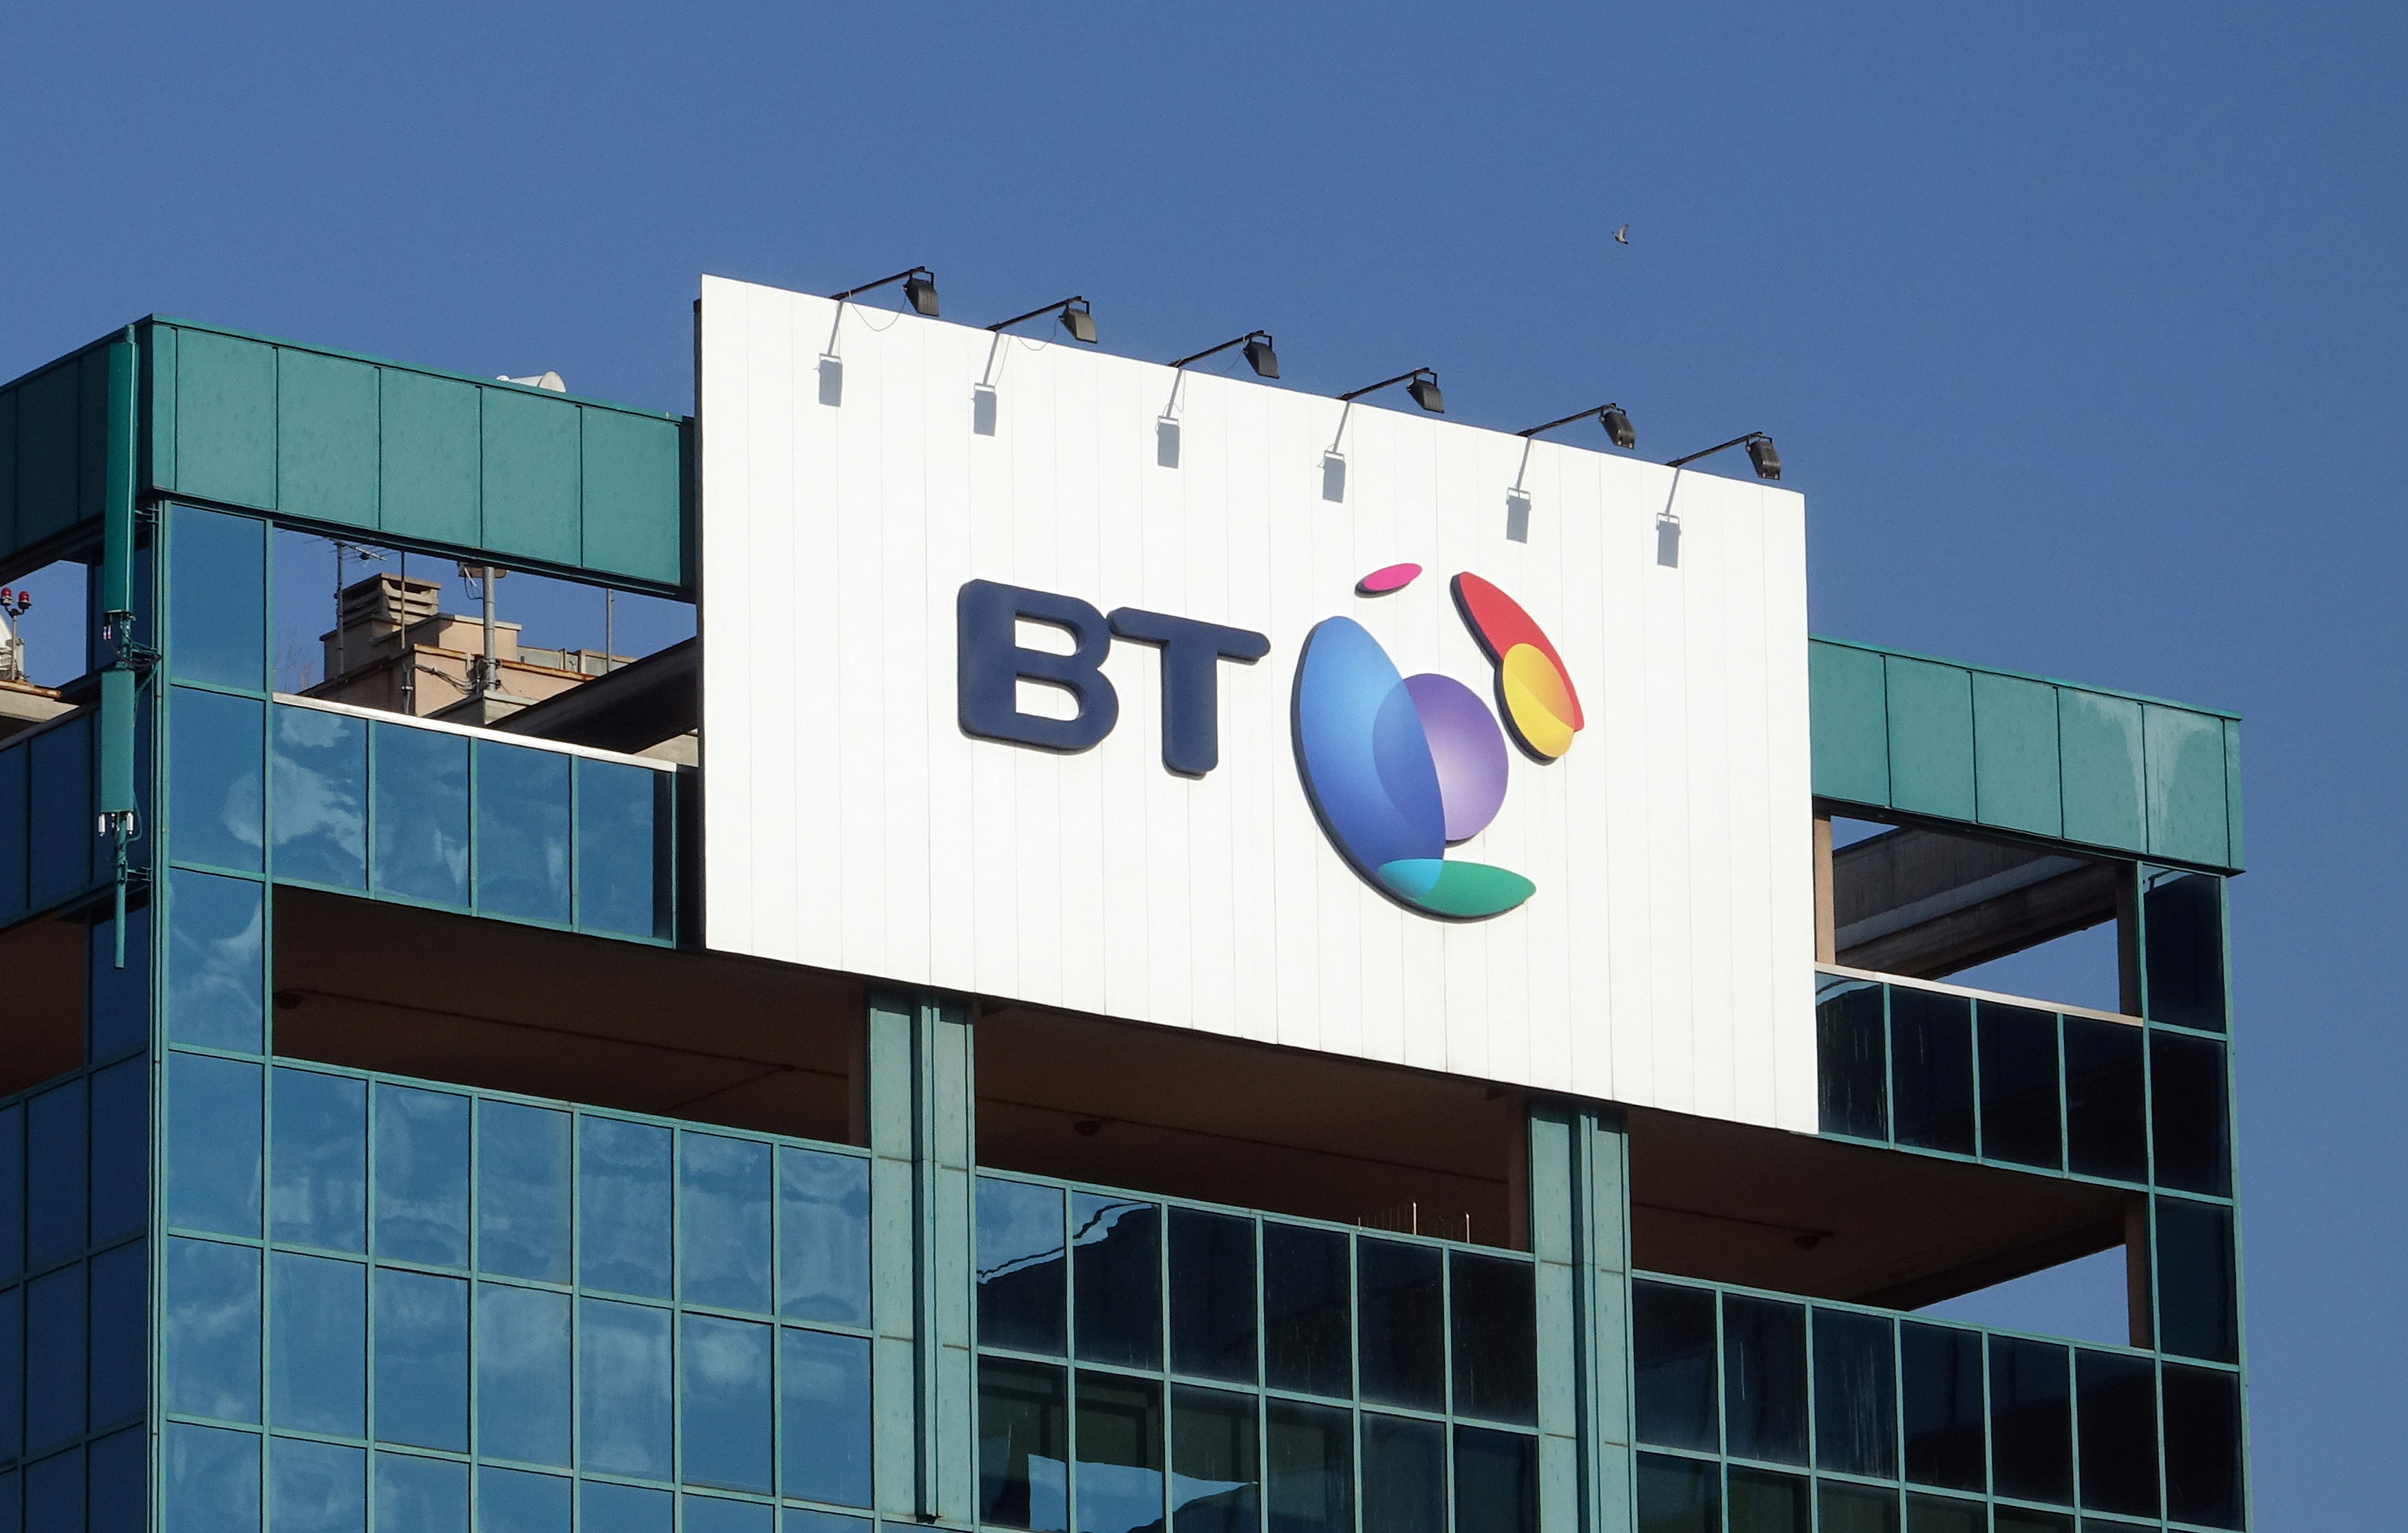 Orange reduces BT stake with share sale, bond offering